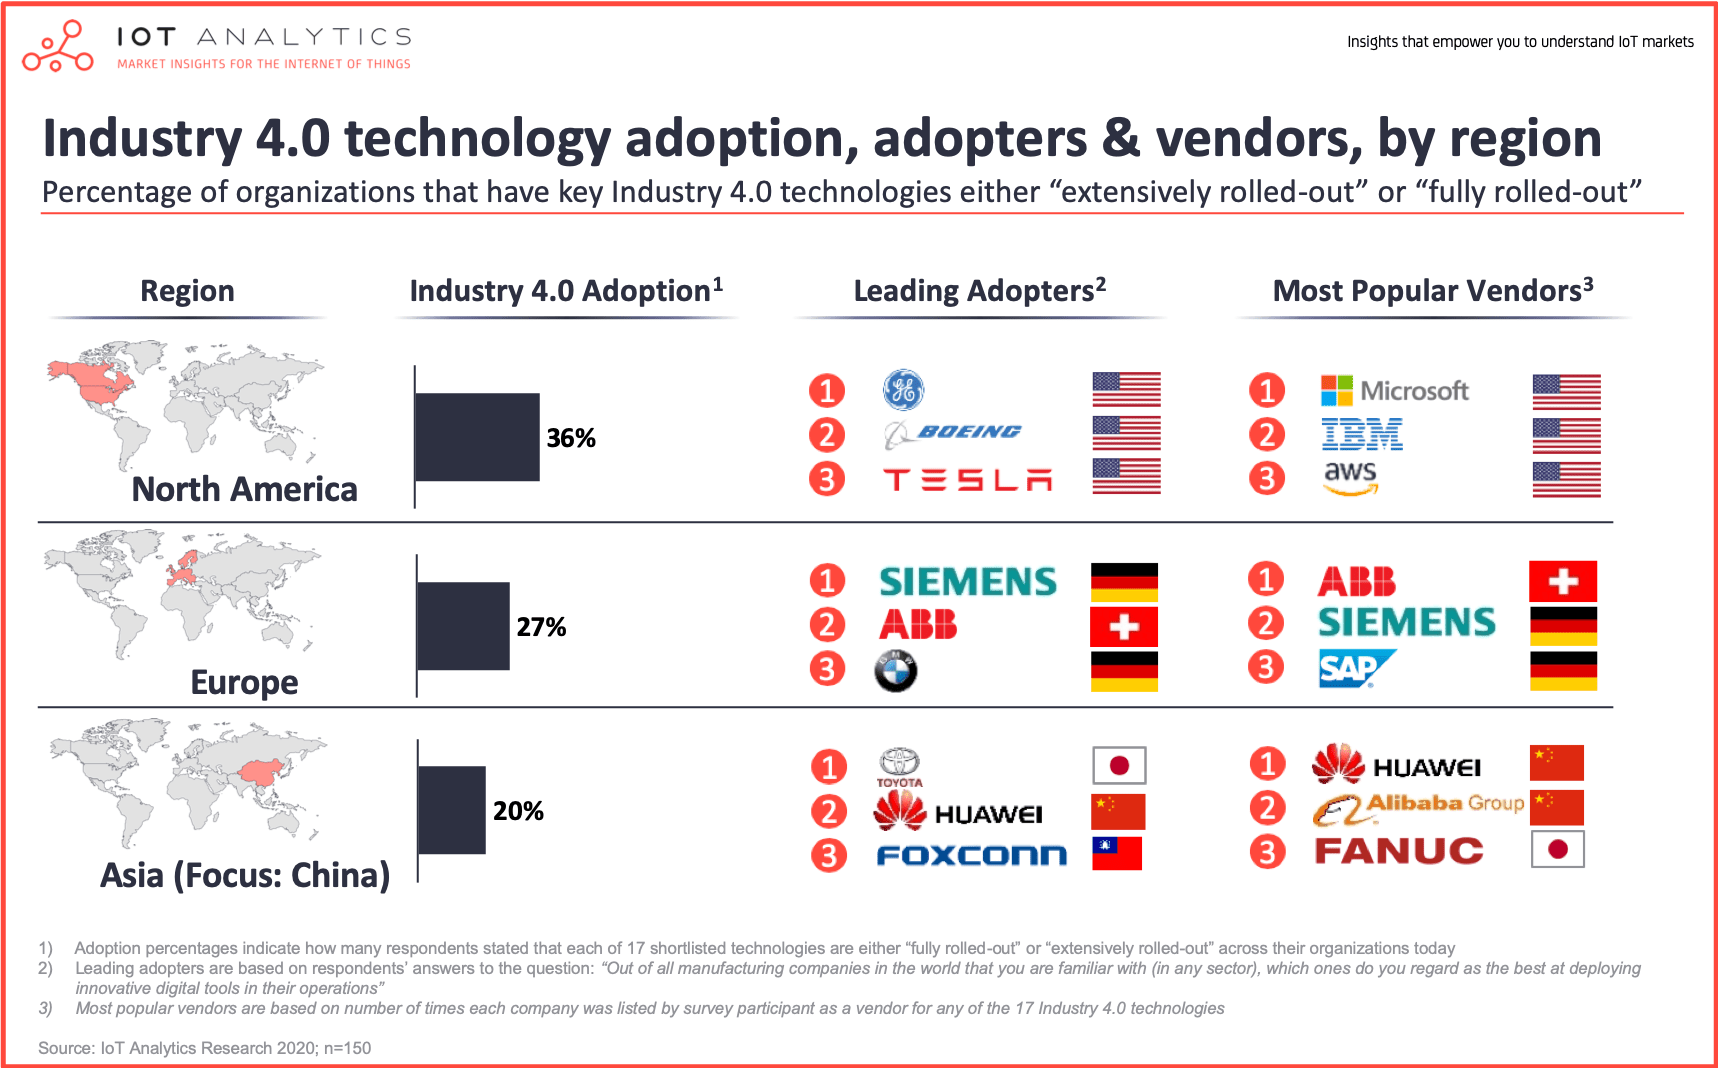 Industry 4.0 adoption report 2020 - Technology adoption vendors by region